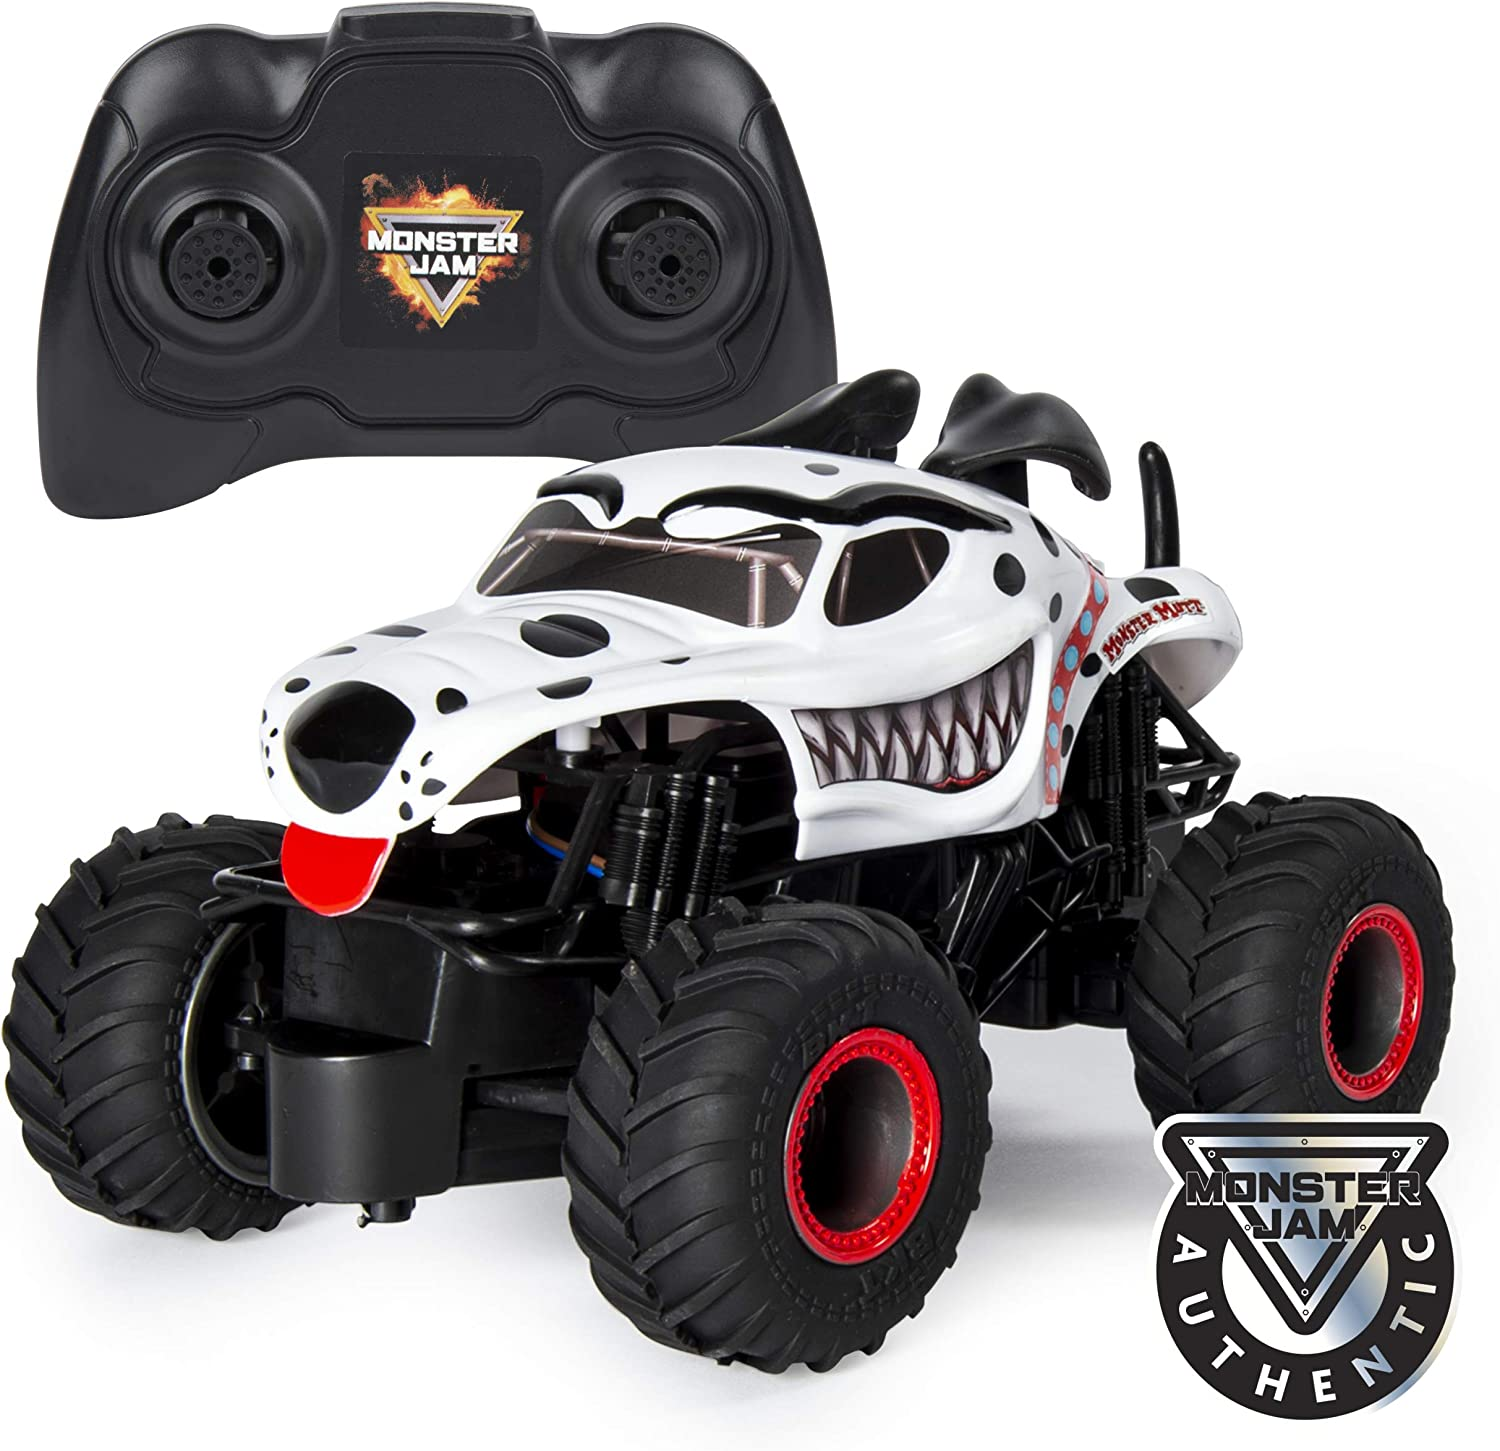 Monster Jam, Official Monster Mutt Dalmatian Remote Control Monster Truck, 1: 24 Scale, 2.4 Ghz, For Ages 4 & Up